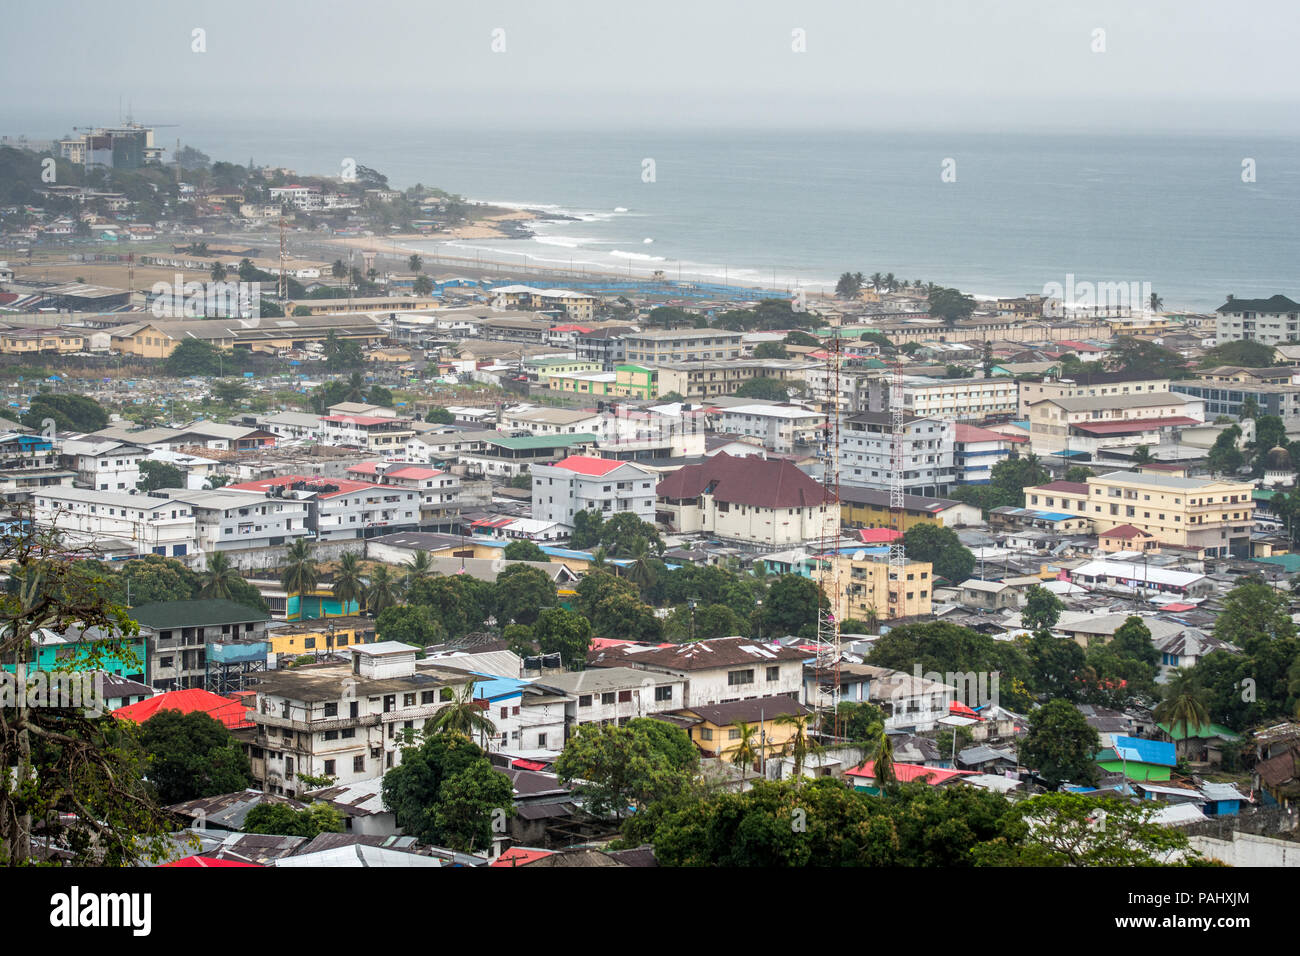 An elevated view of the city of Monrovia, Liberia - Stock Image